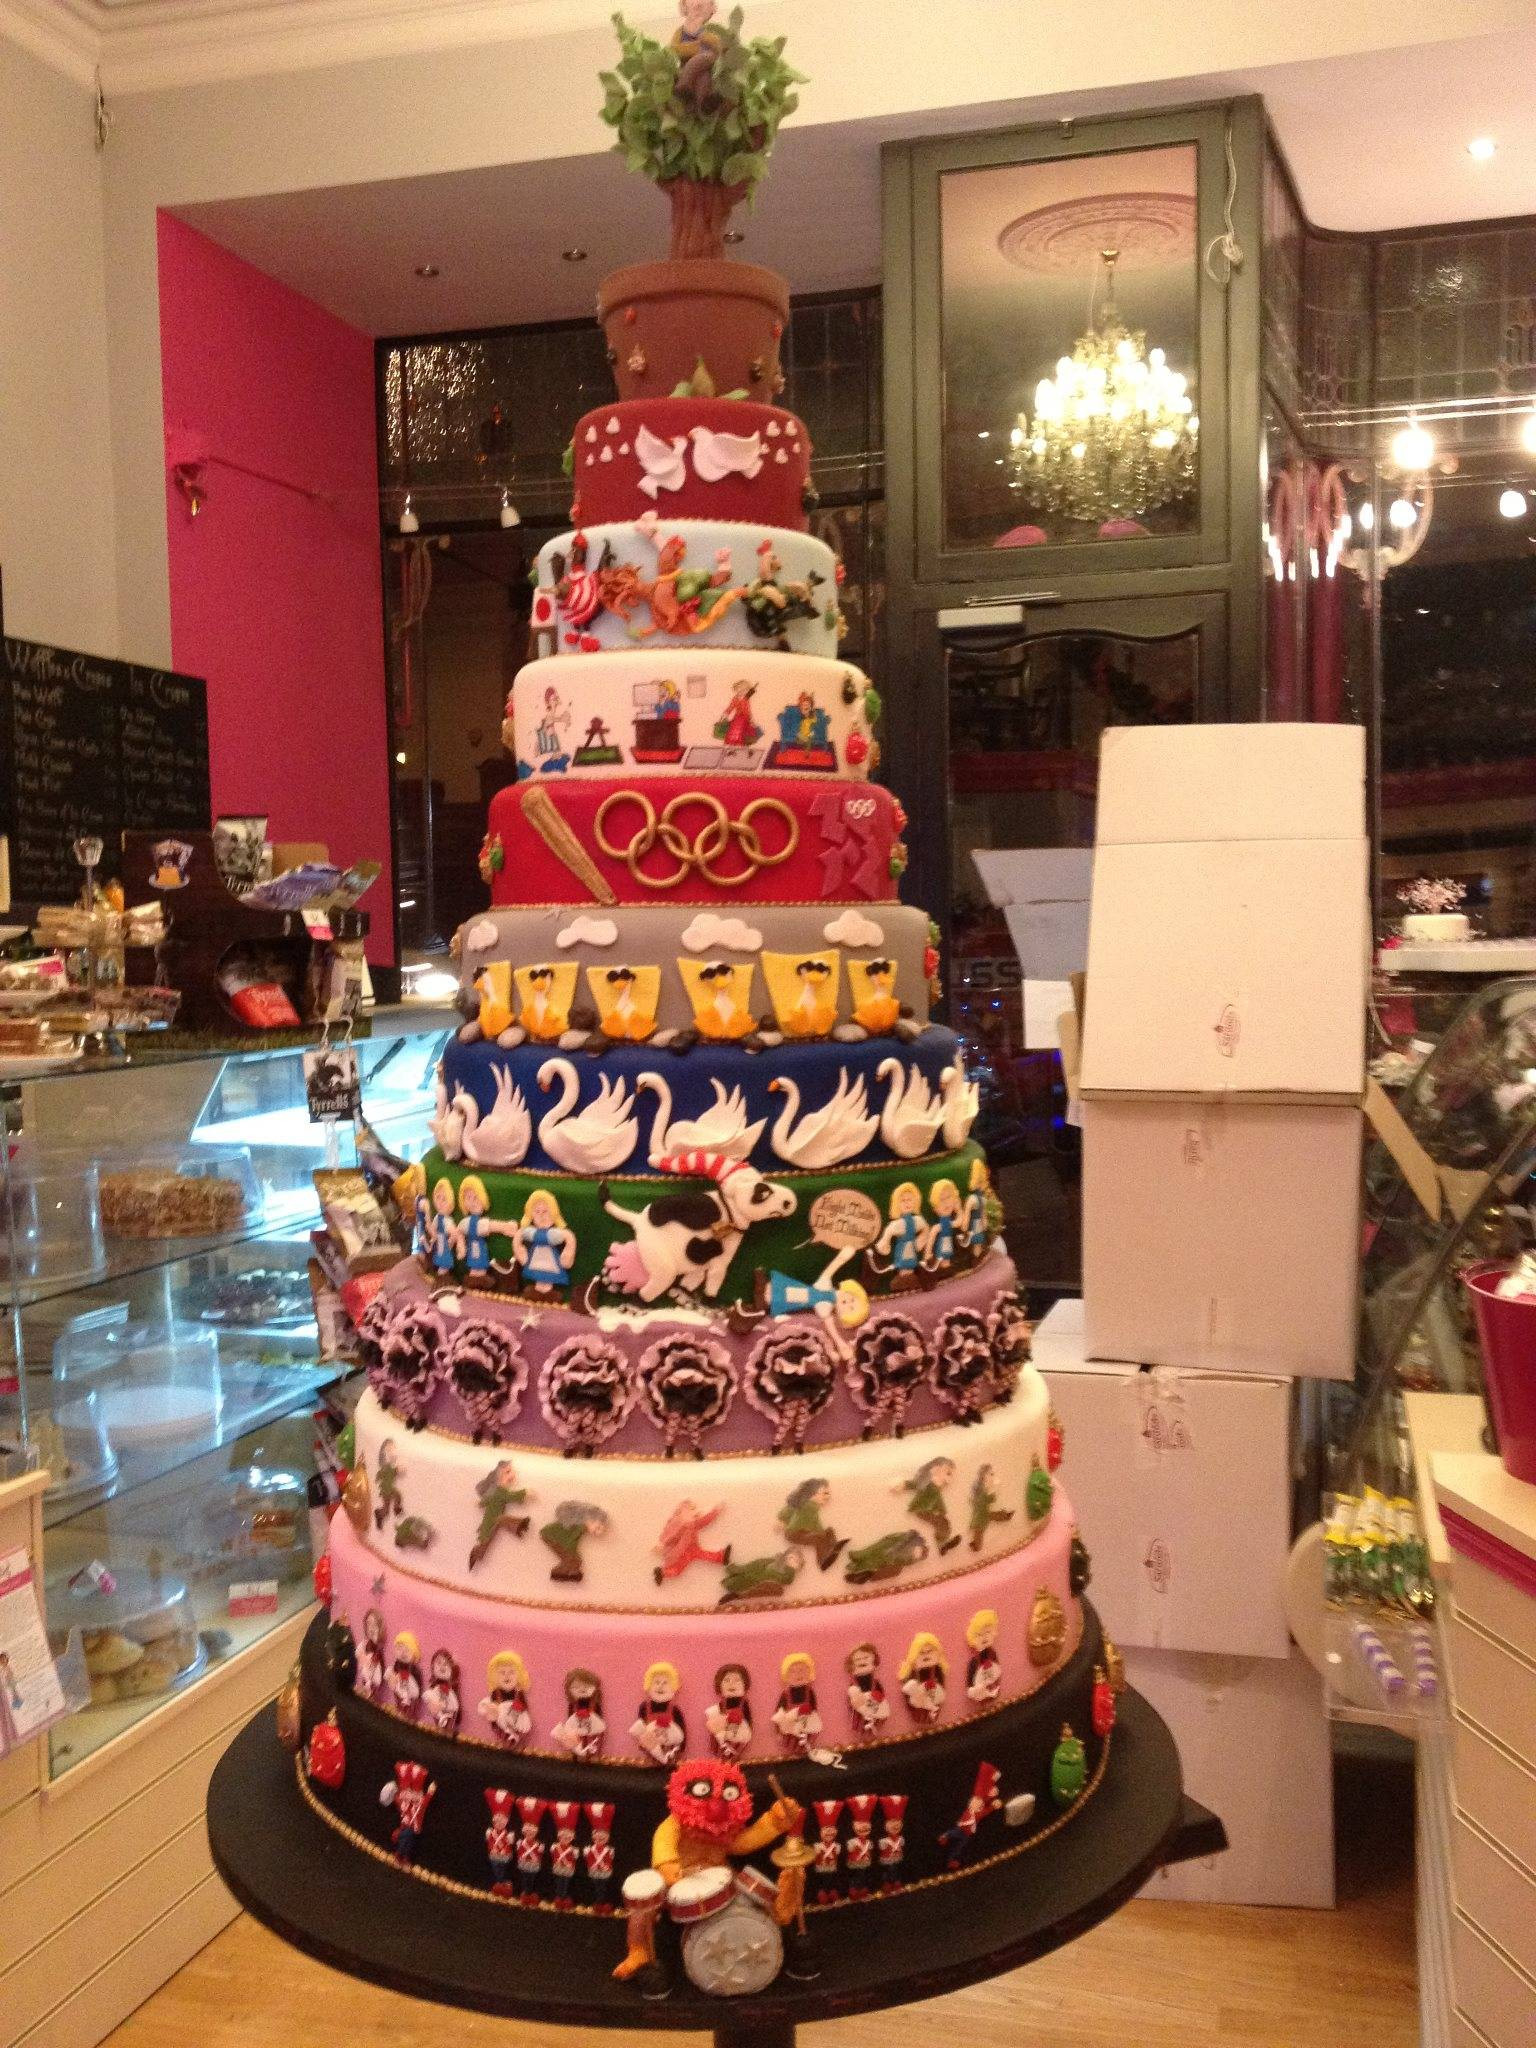 12 Days Of Christmas Cakes  34 Christmas Cakes That Are More Works of Art Than They